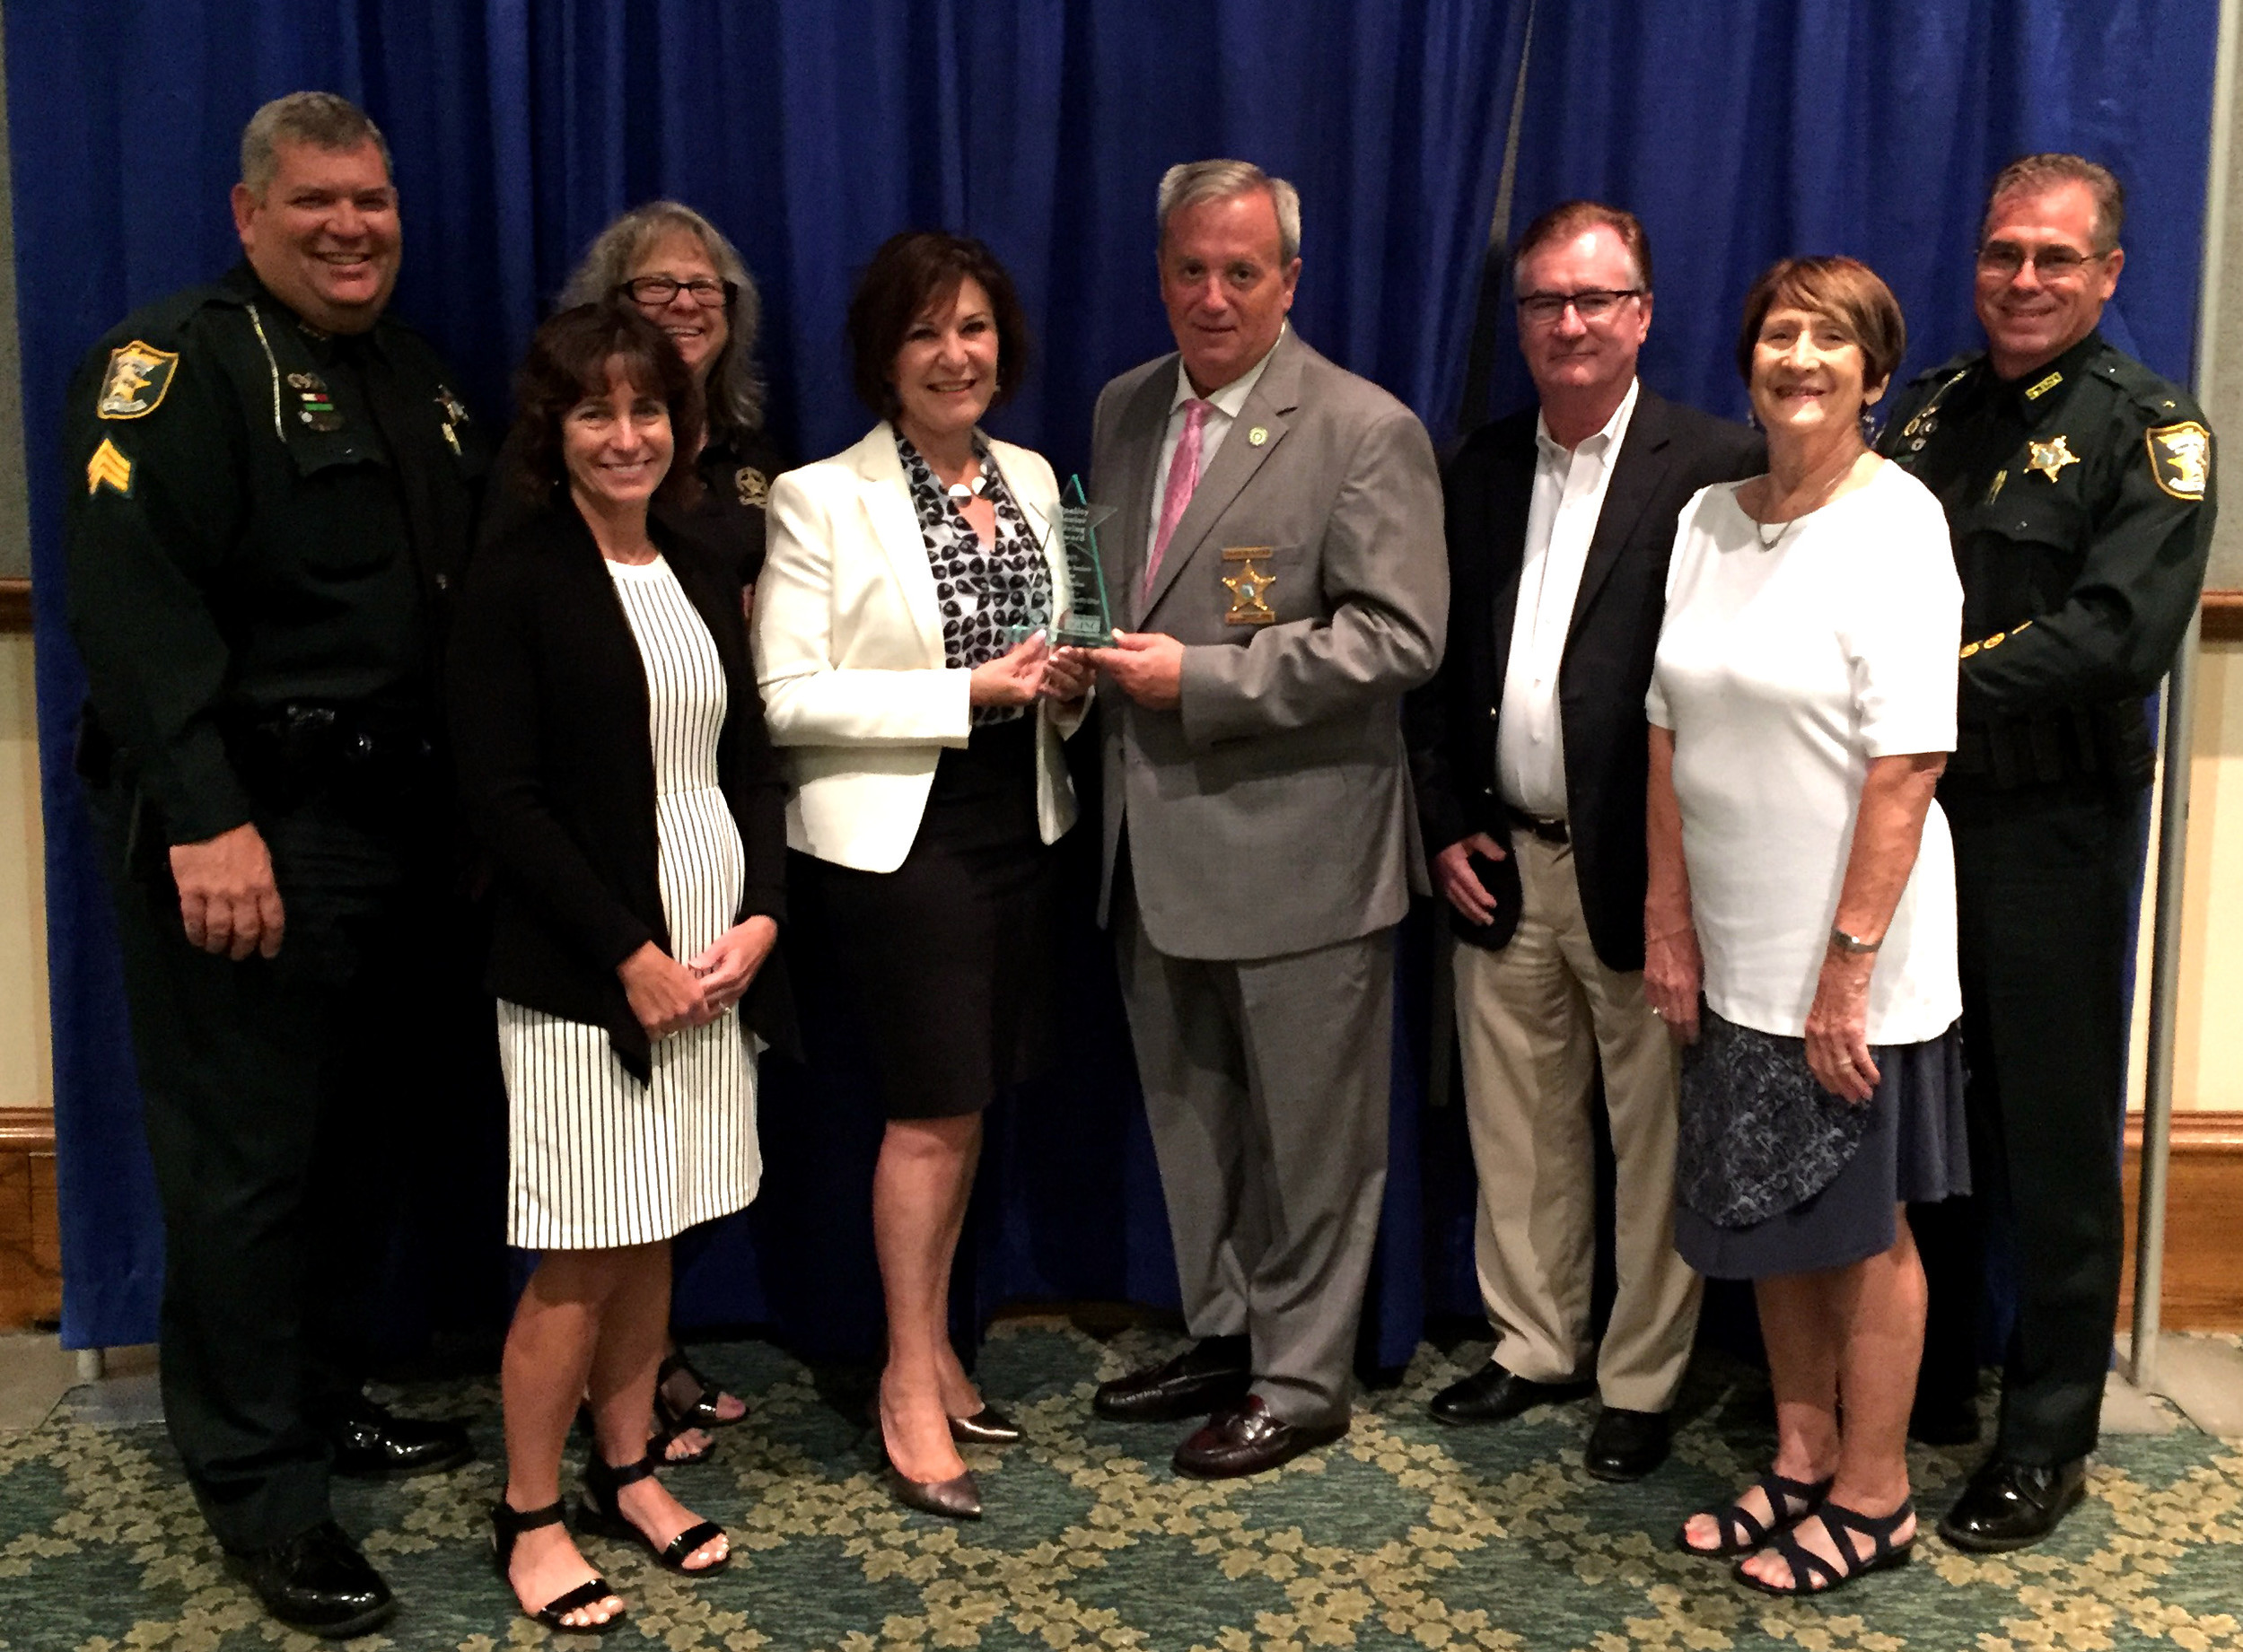 SJSO commended for 'service to seniors' | The Ponte Vedra